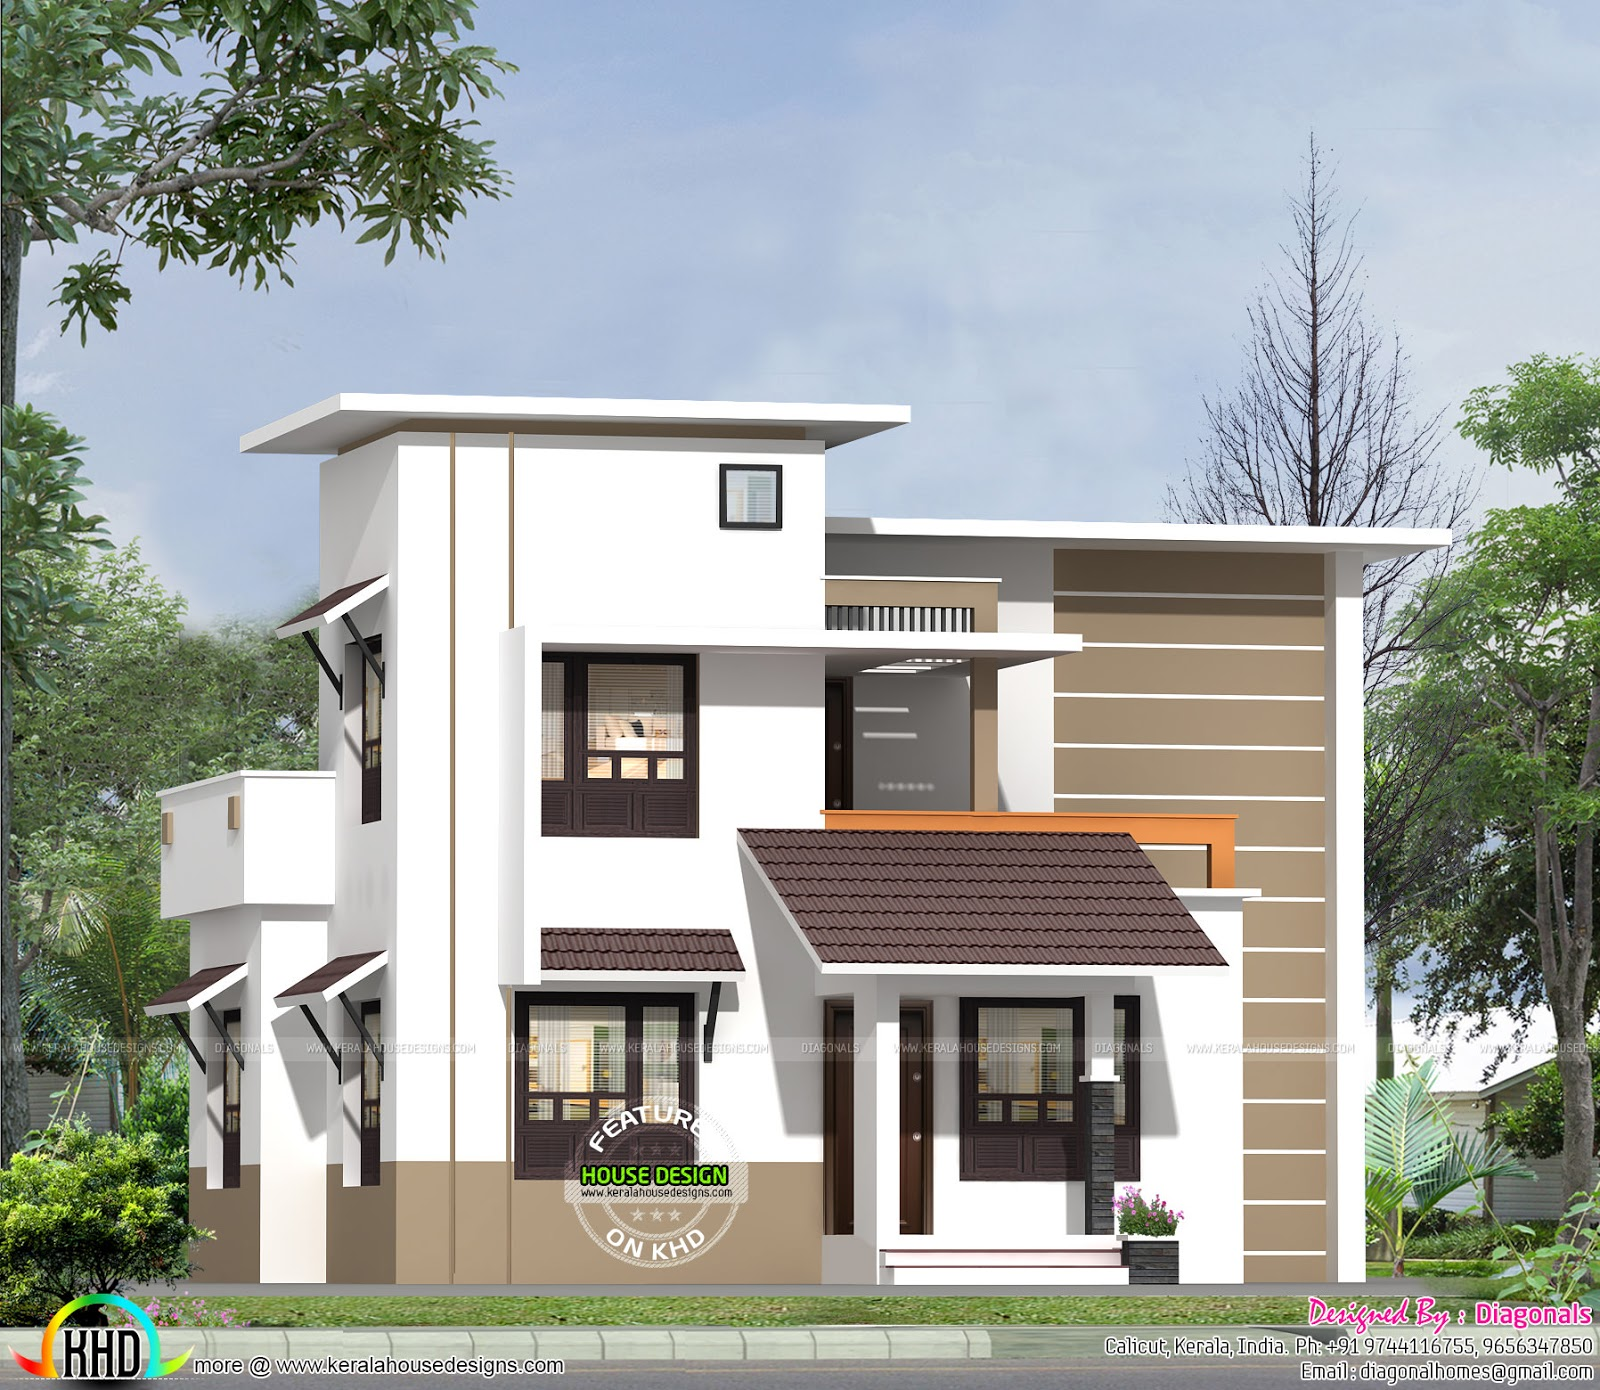 Affordable low cost home kerala home design and floor plans for Low cost house plans with estimate